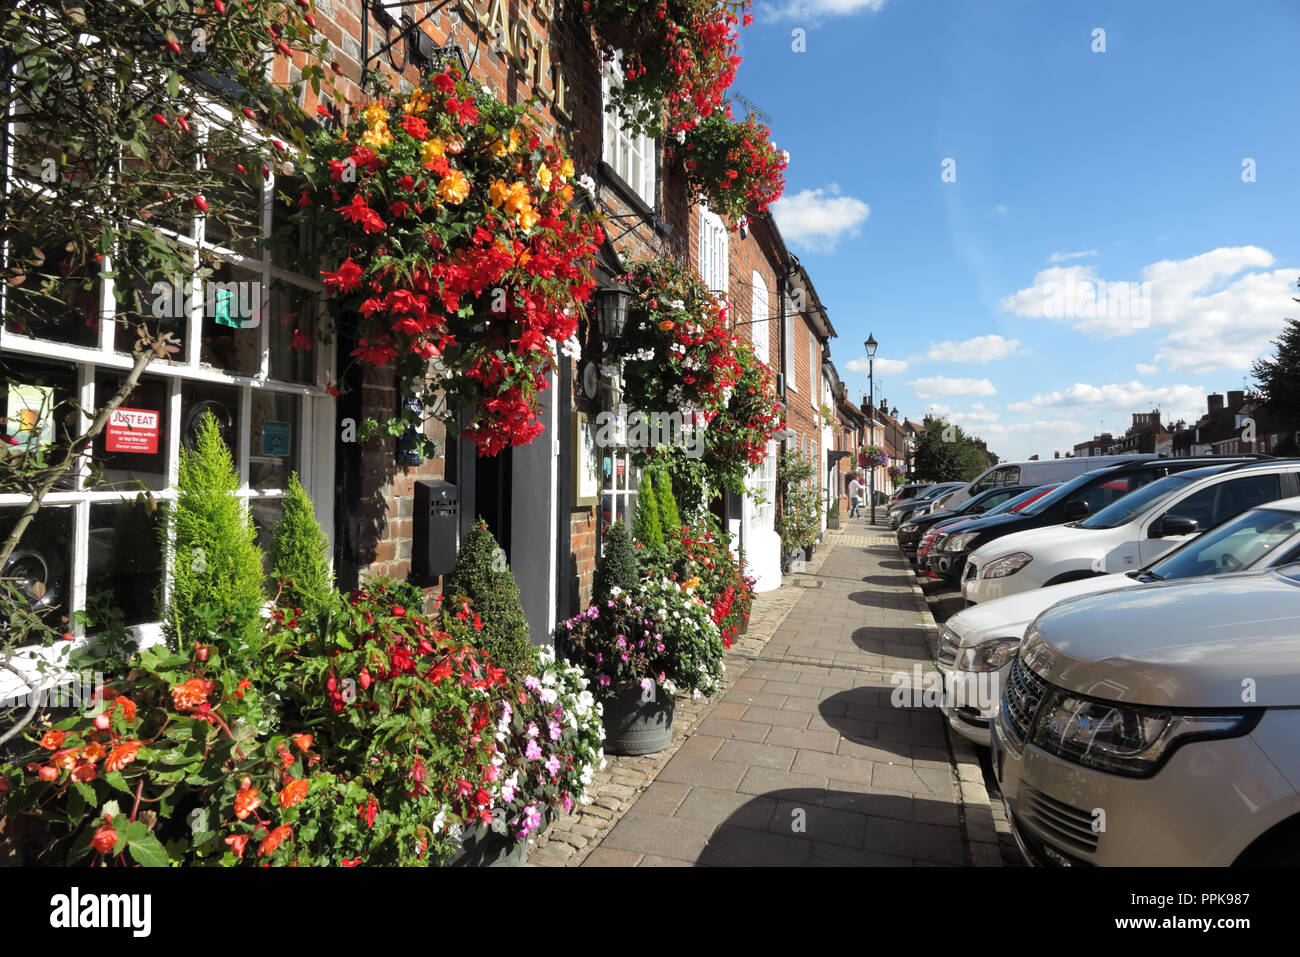 The Eagle, High Street, Amersham, Buckinghamshire - Stock Image